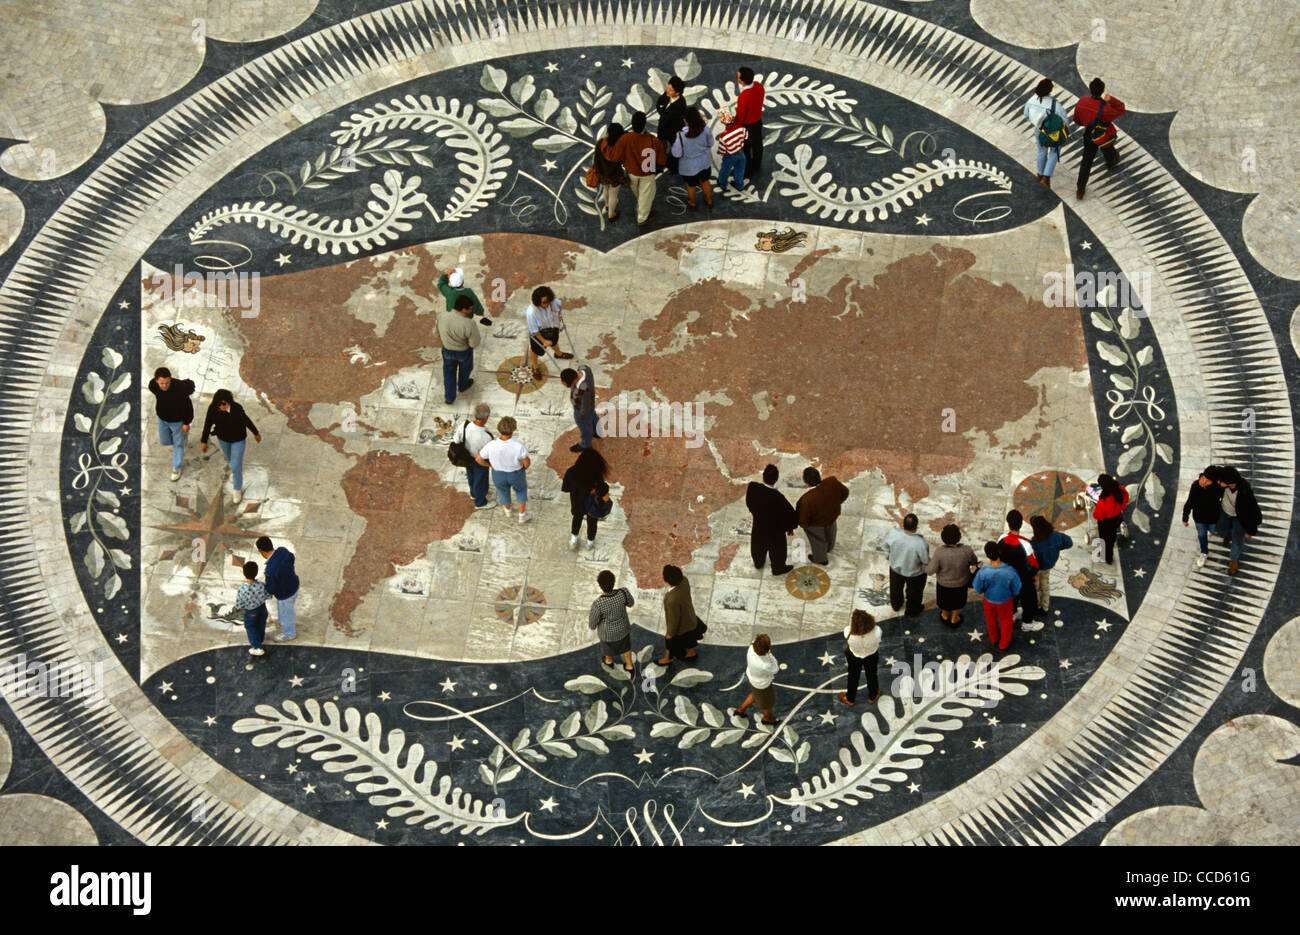 Portugese pedestrians walk over a world map on the pavement beneath the Monument of Discoveries, Lisbon. - Stock Image